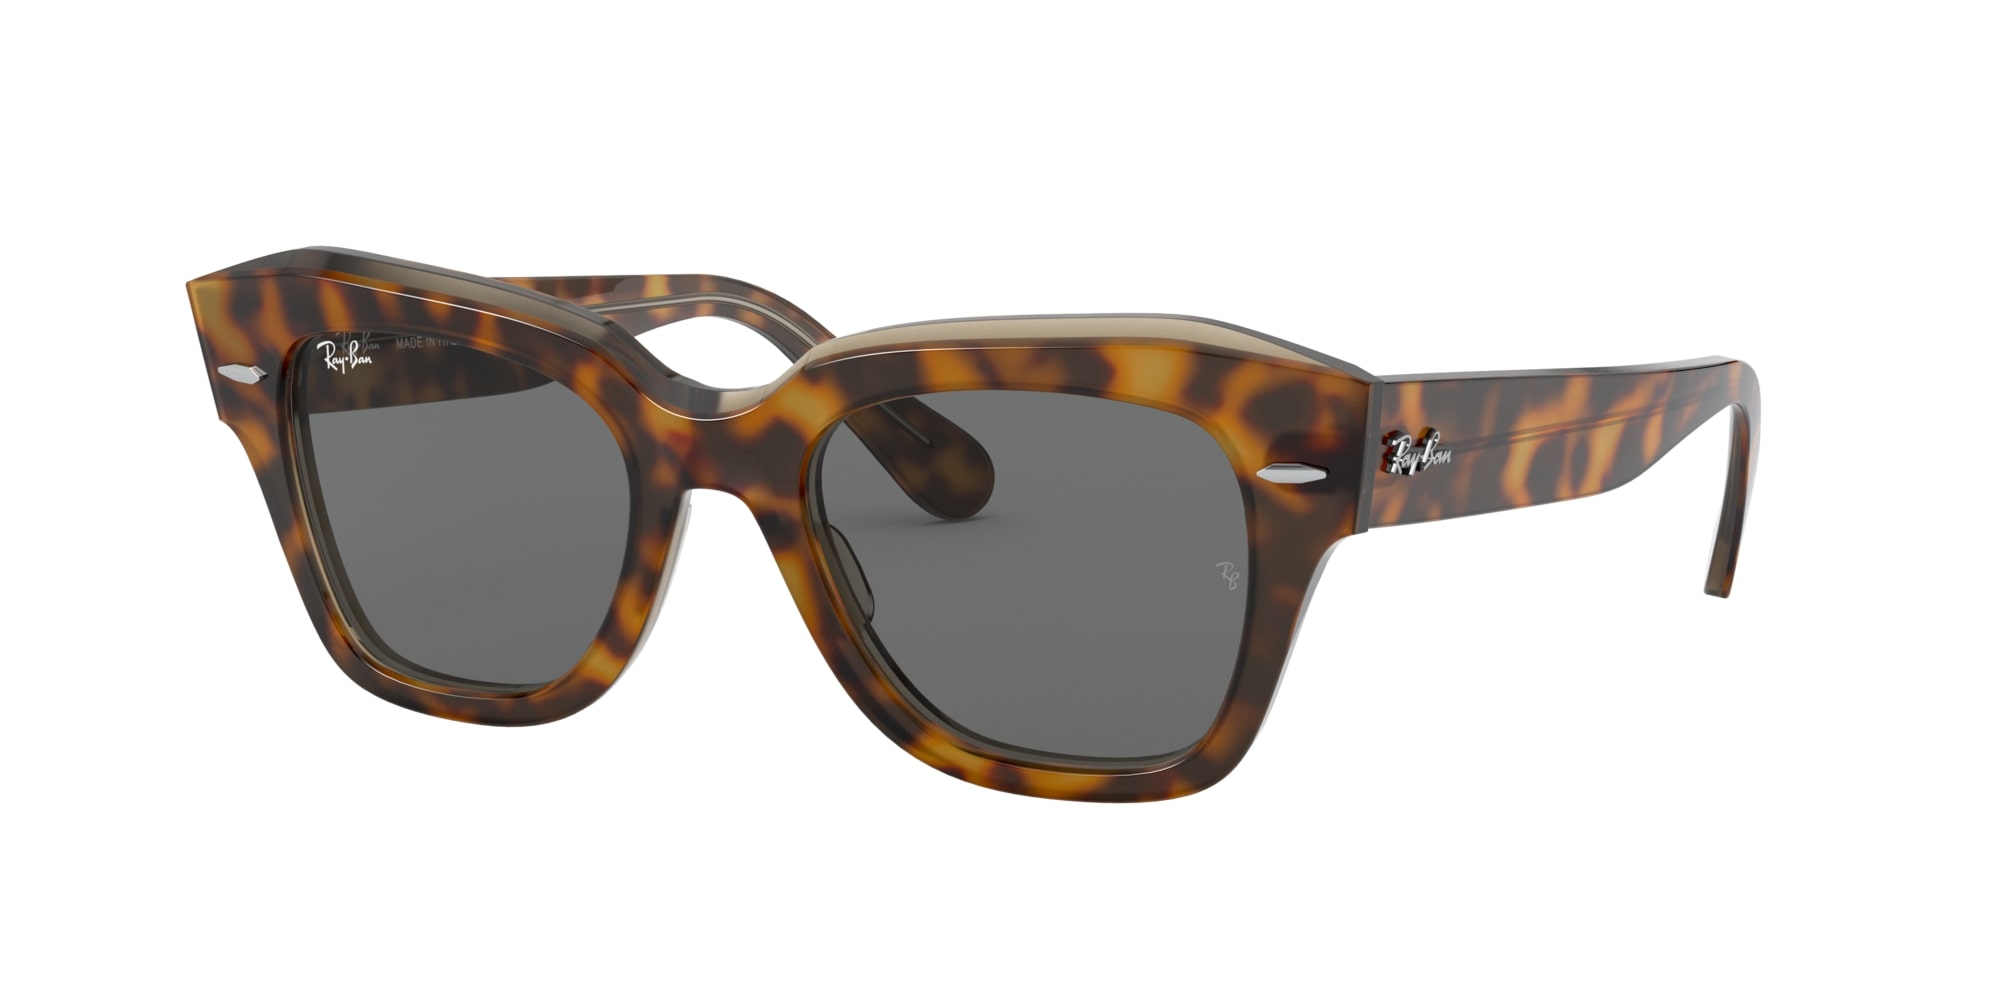 Ray Ban State Street solbriller